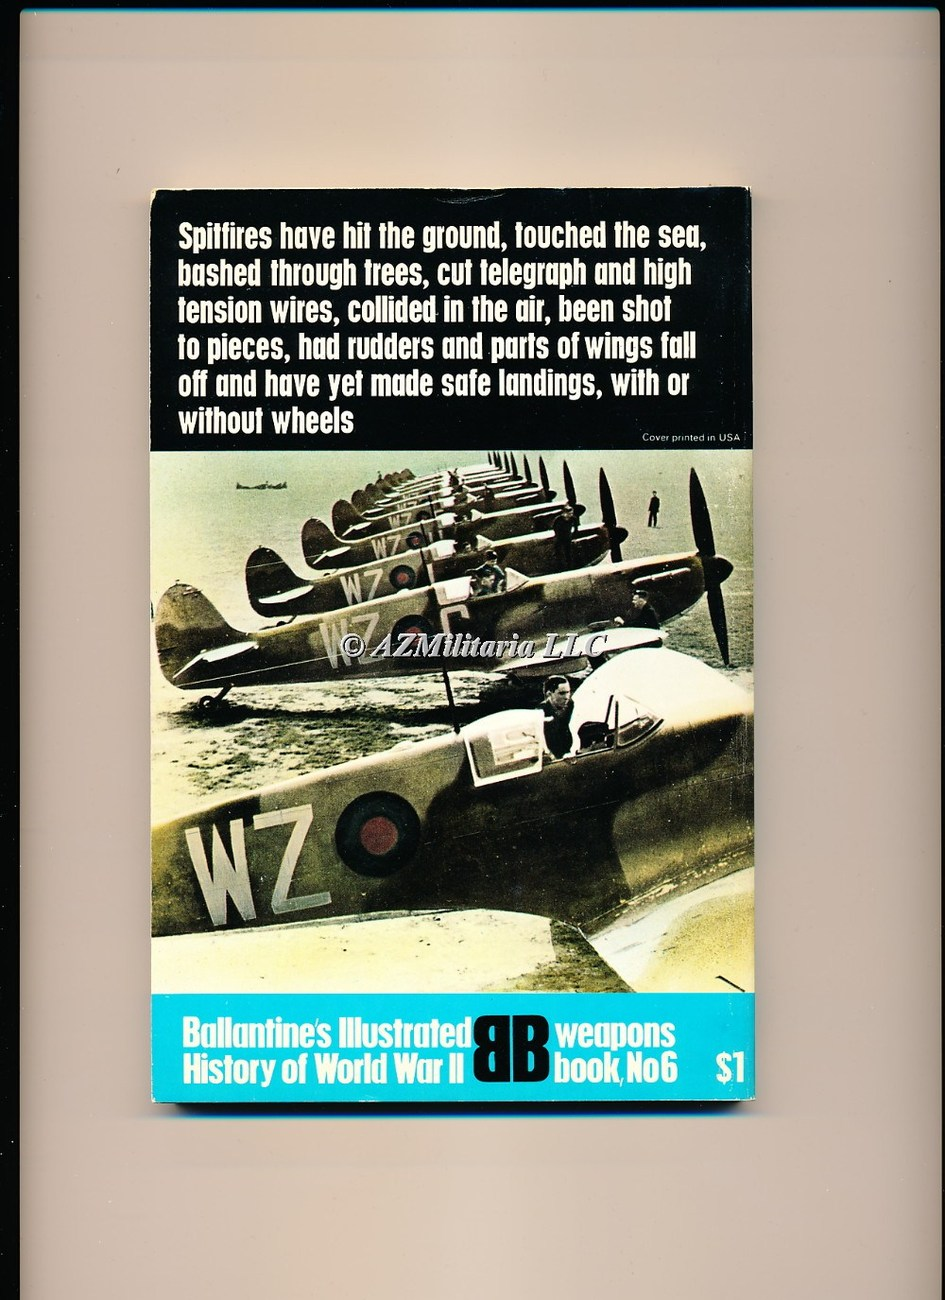 Spitfire (Weapons Book, No 06)